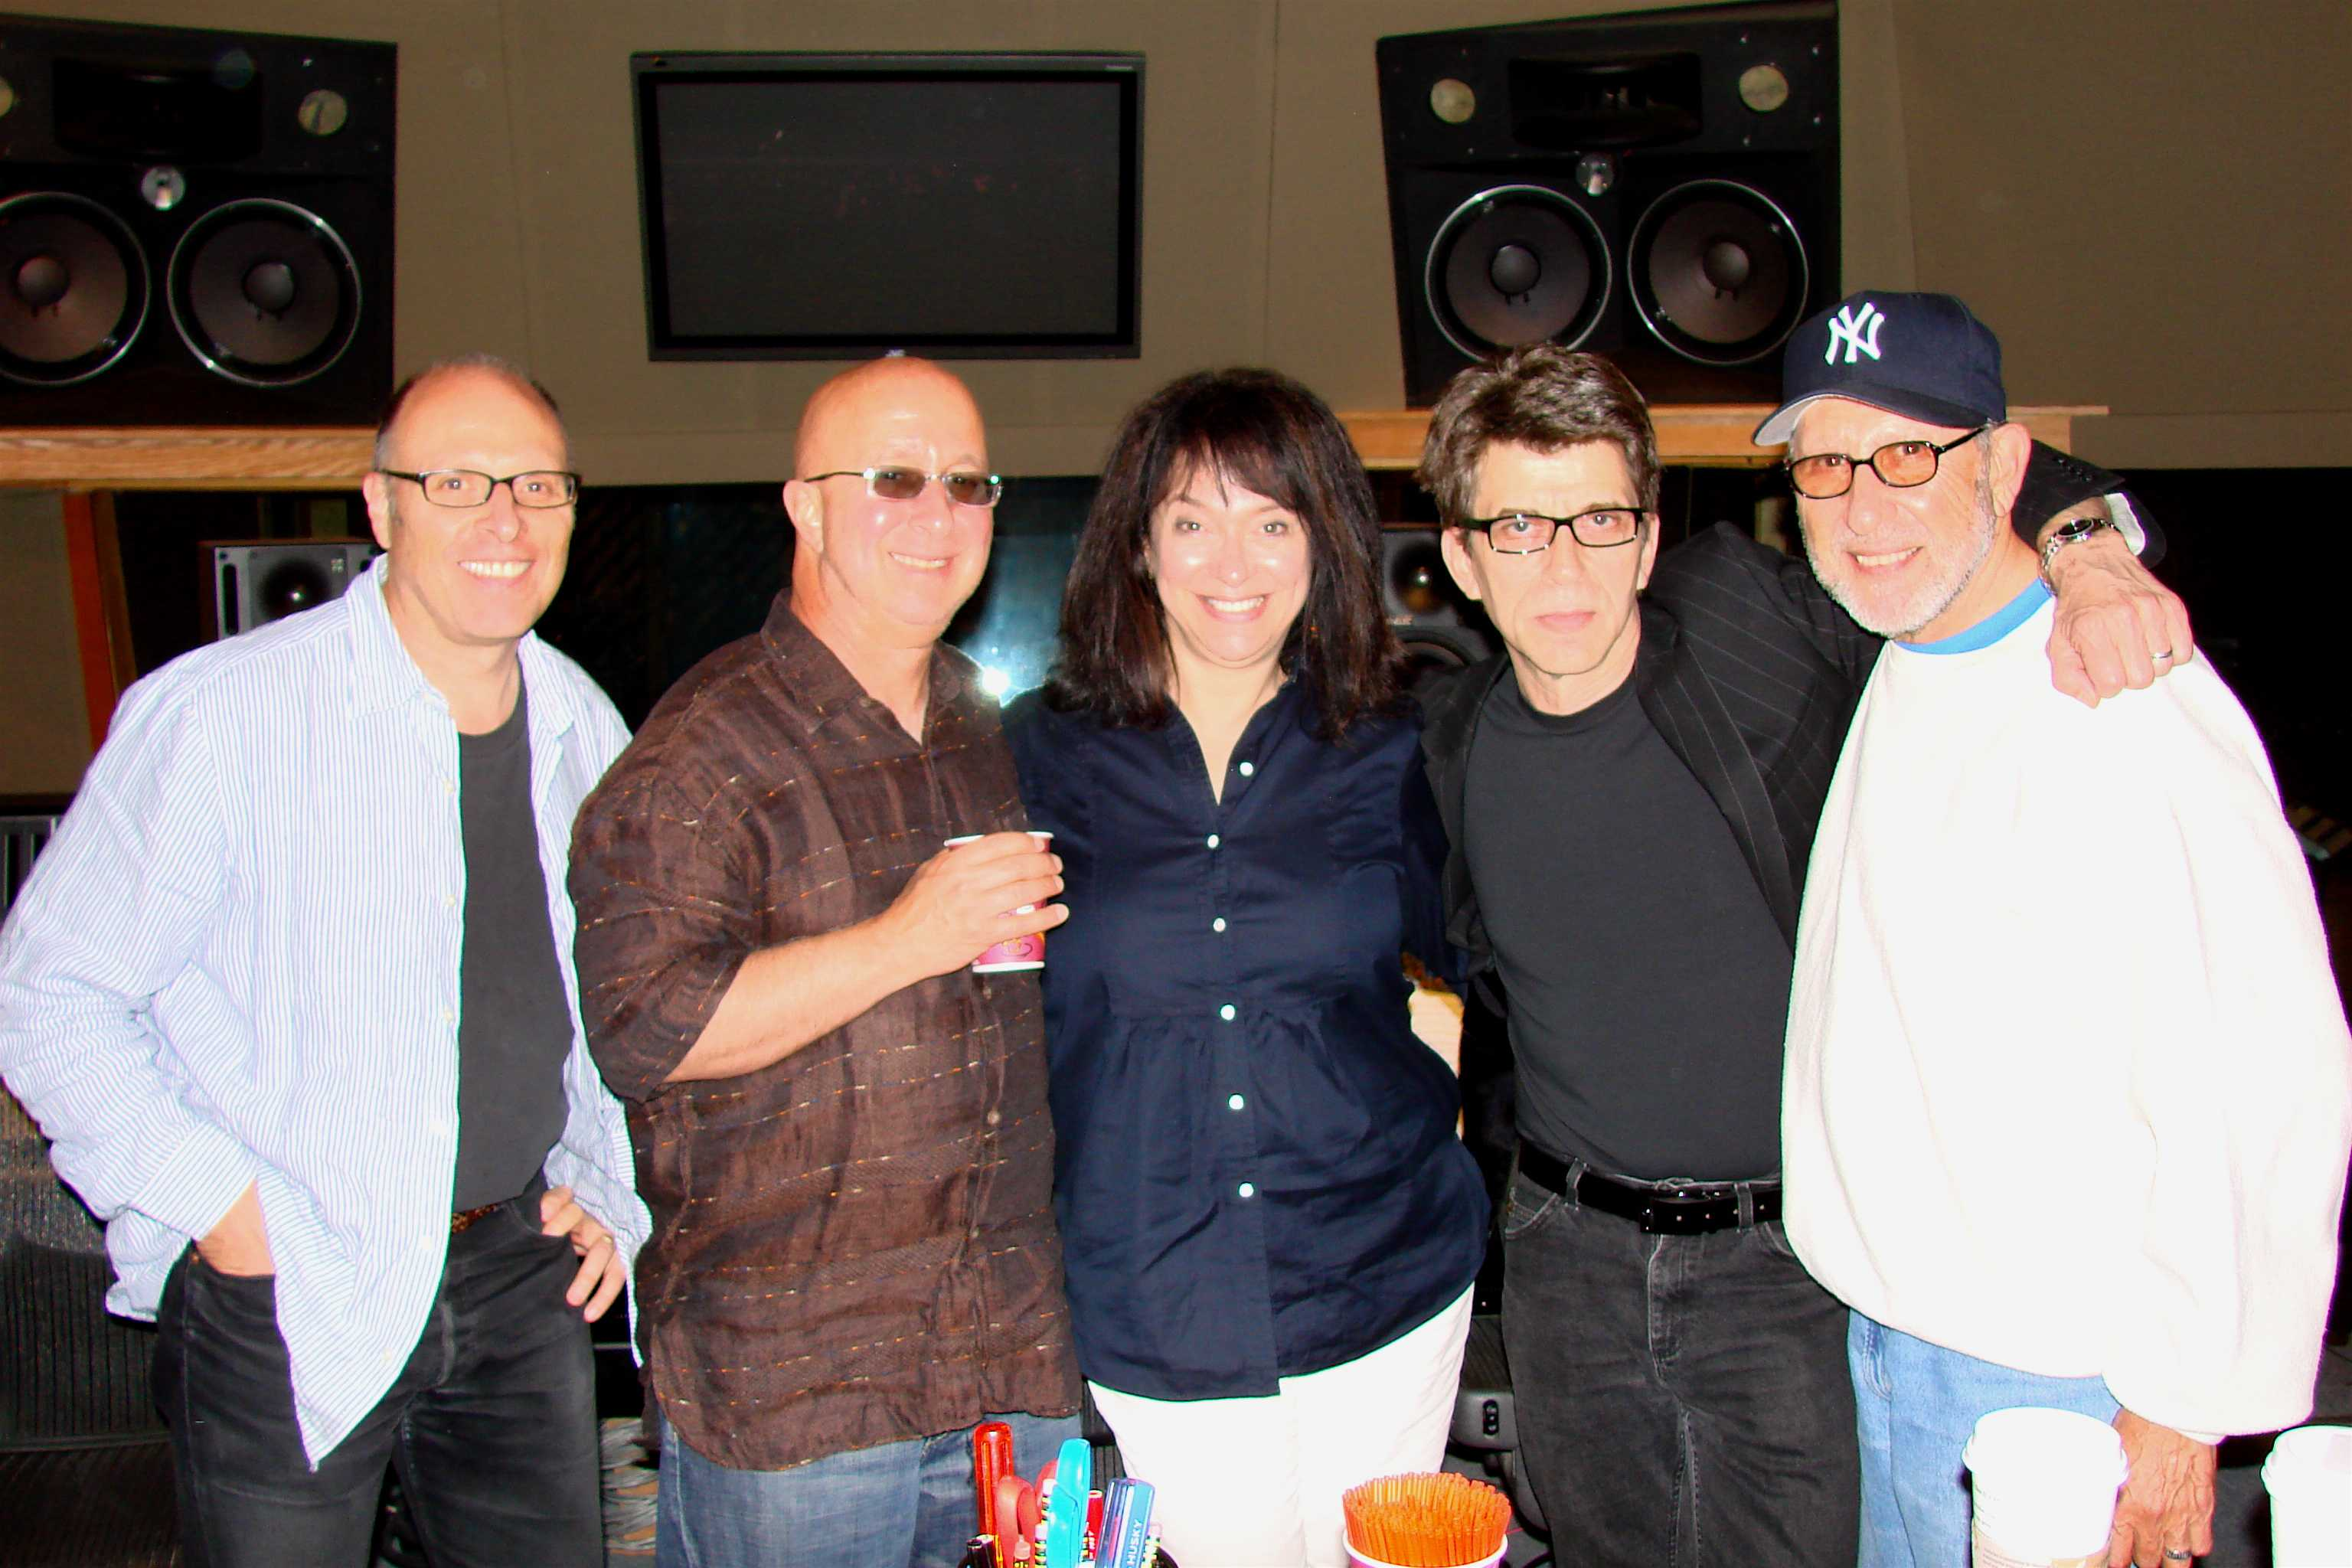 With Paul Shaffer in NYC